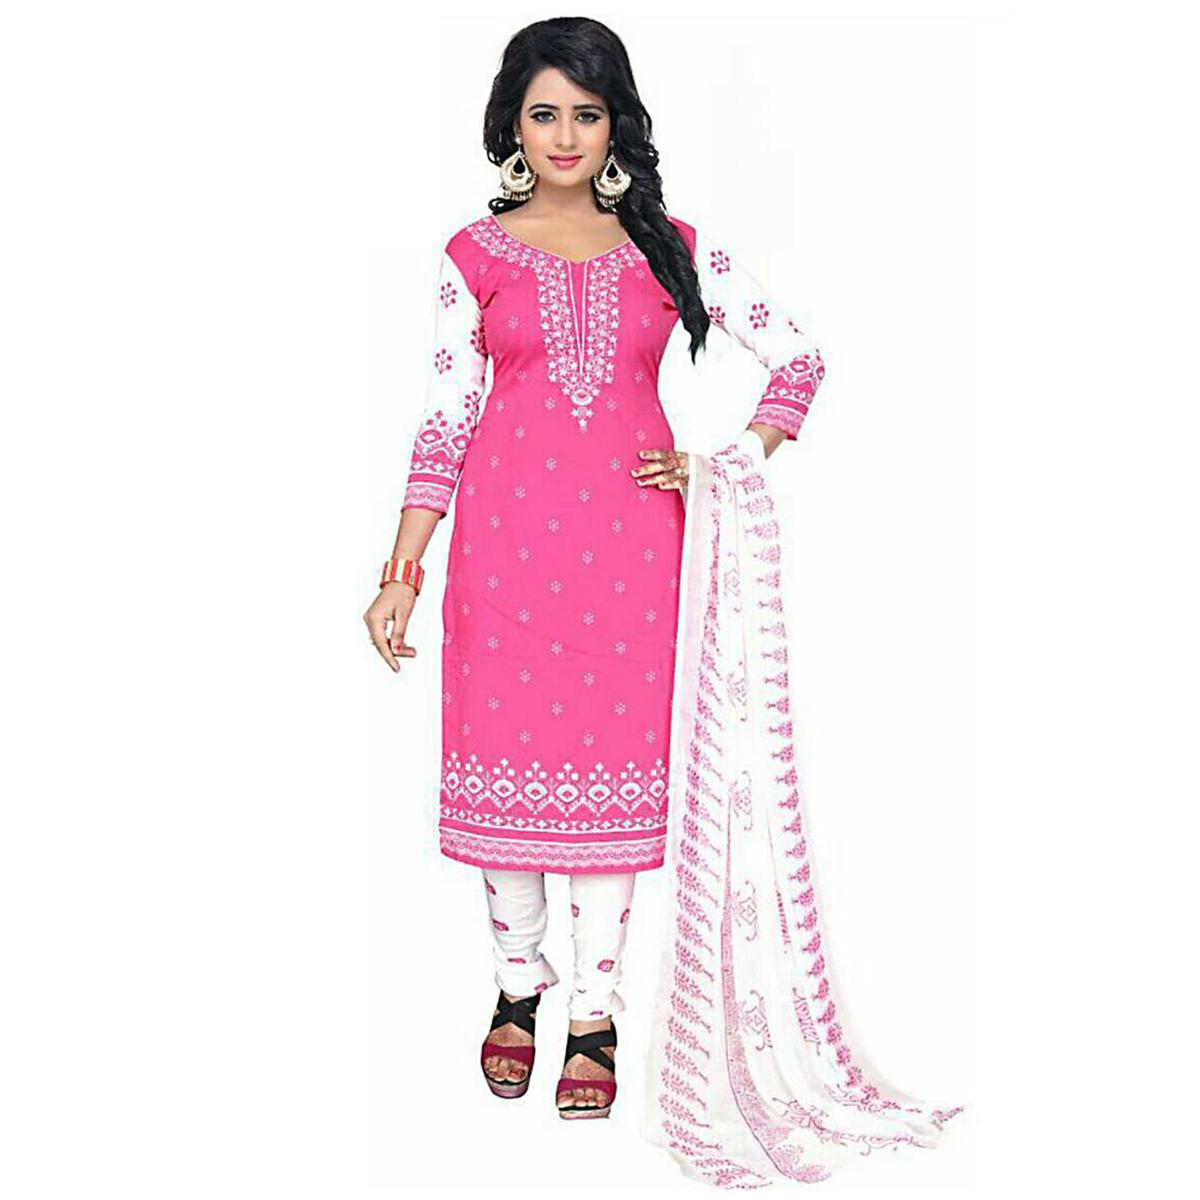 Sensational Pink Colored Casual Wear Printed Crepe Salwar Suit